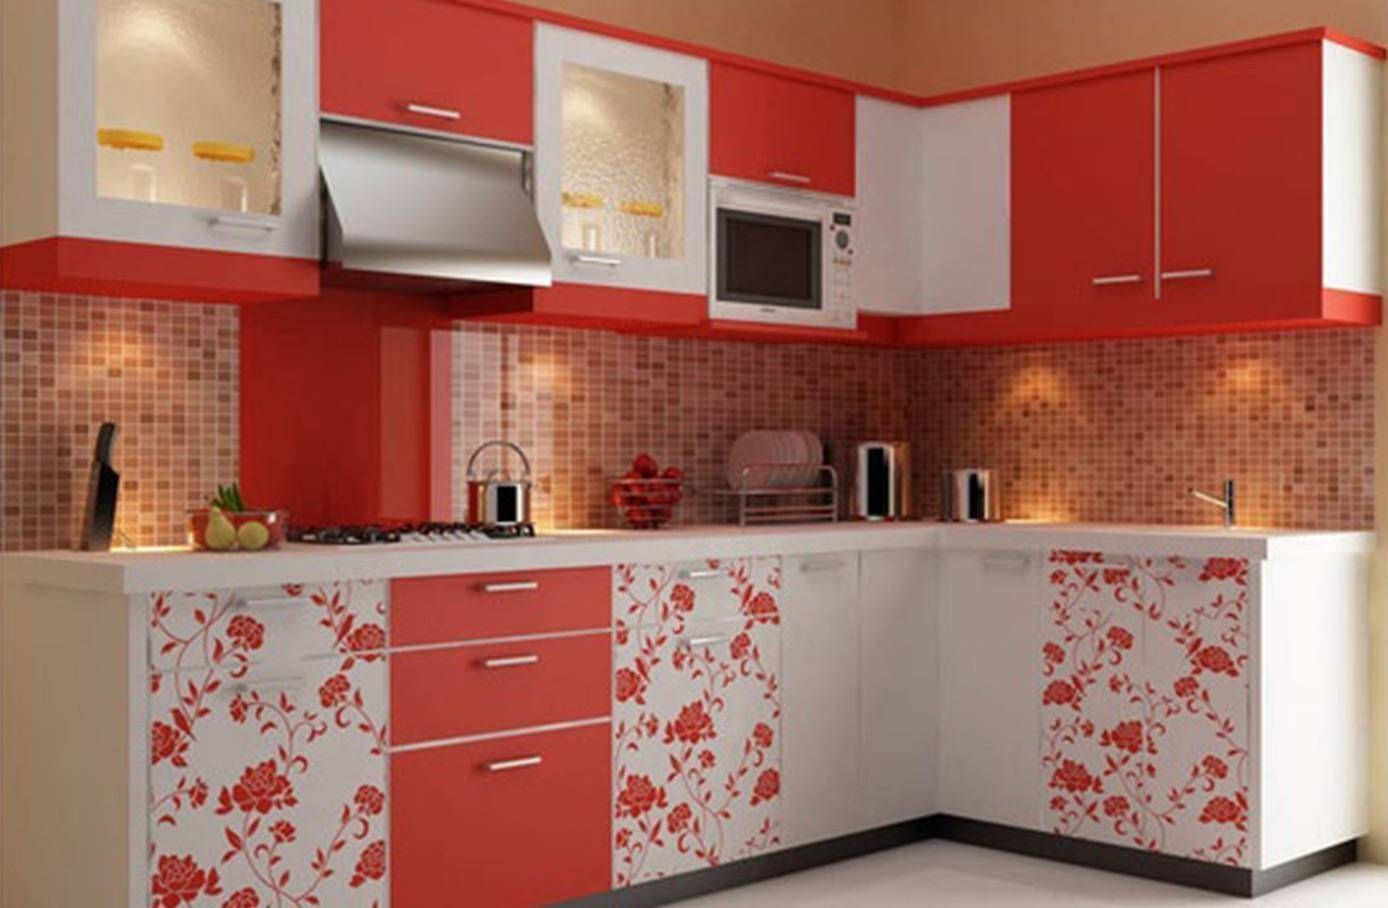 Modular Kitchen Design And Price In Delhimodular Kitchen Design And Price In Del In 2020 Kitchen Furniture Design Trendy Kitchen Backsplash Trendy Kitchen Tile